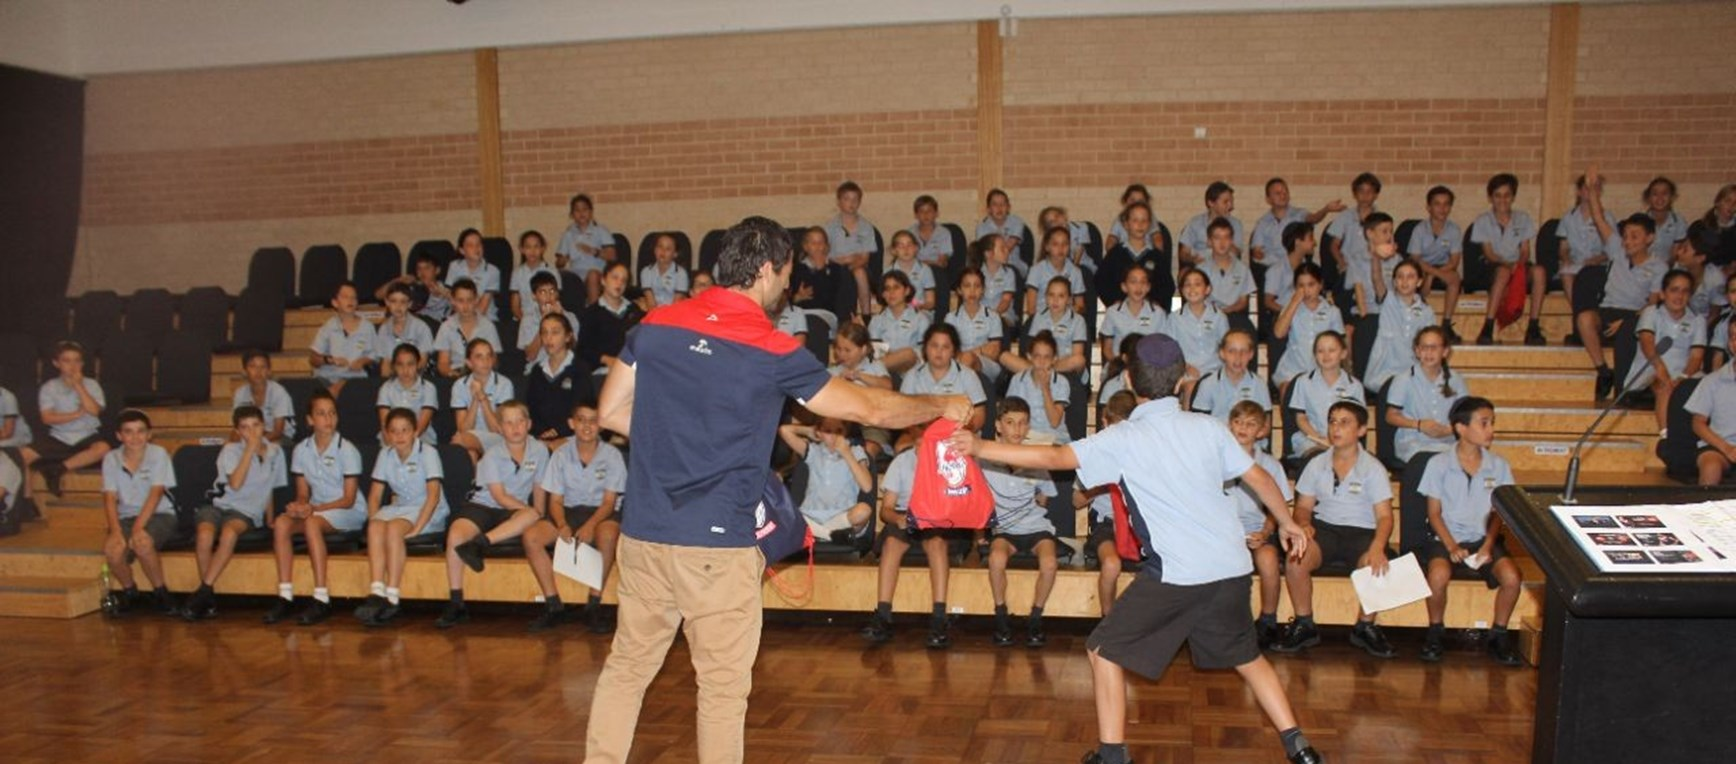 Snaps | Roosters Against Racism - Moriah College